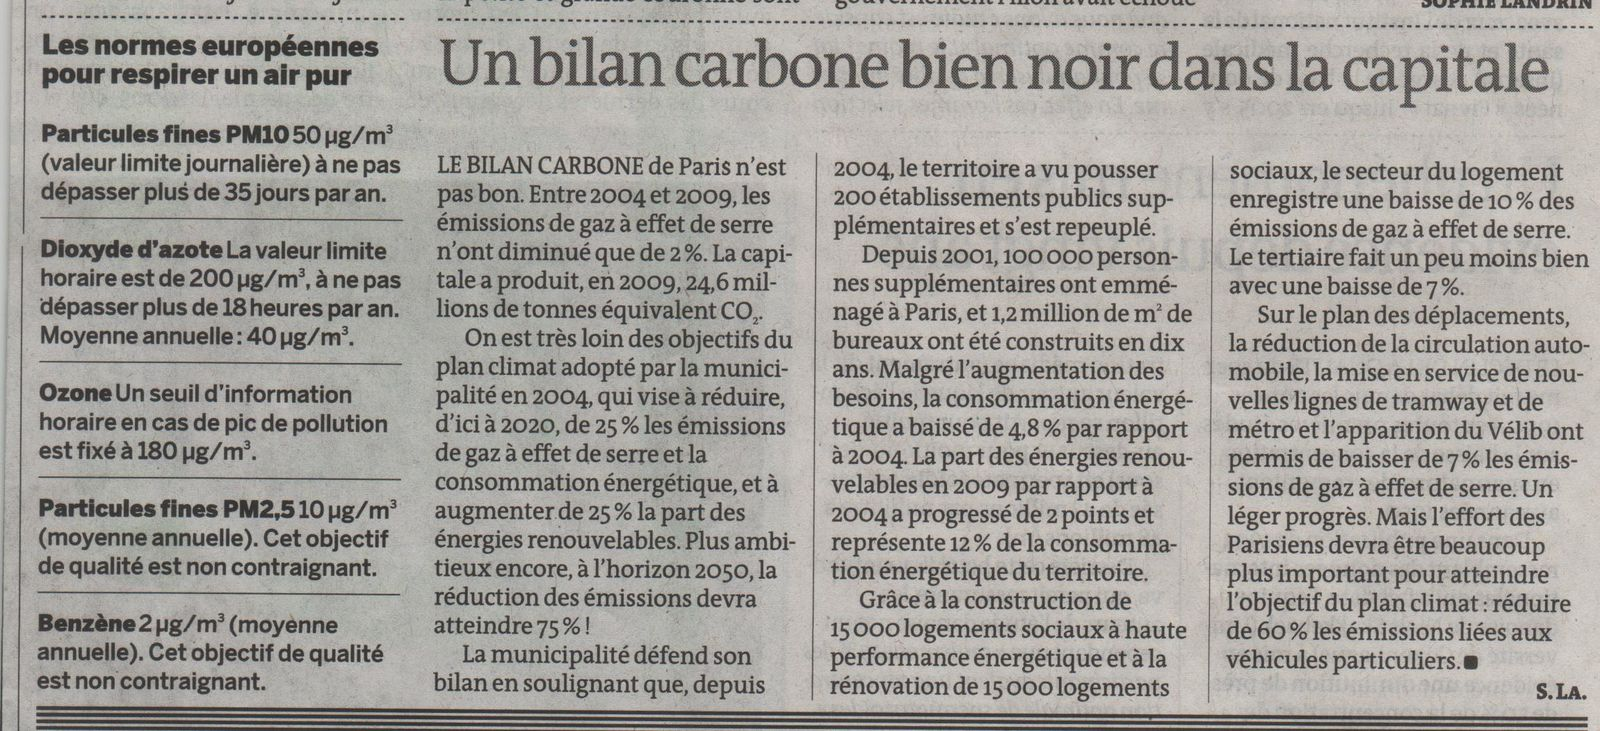 Paris Pollution air 2 - Le monde - 6-12-2012